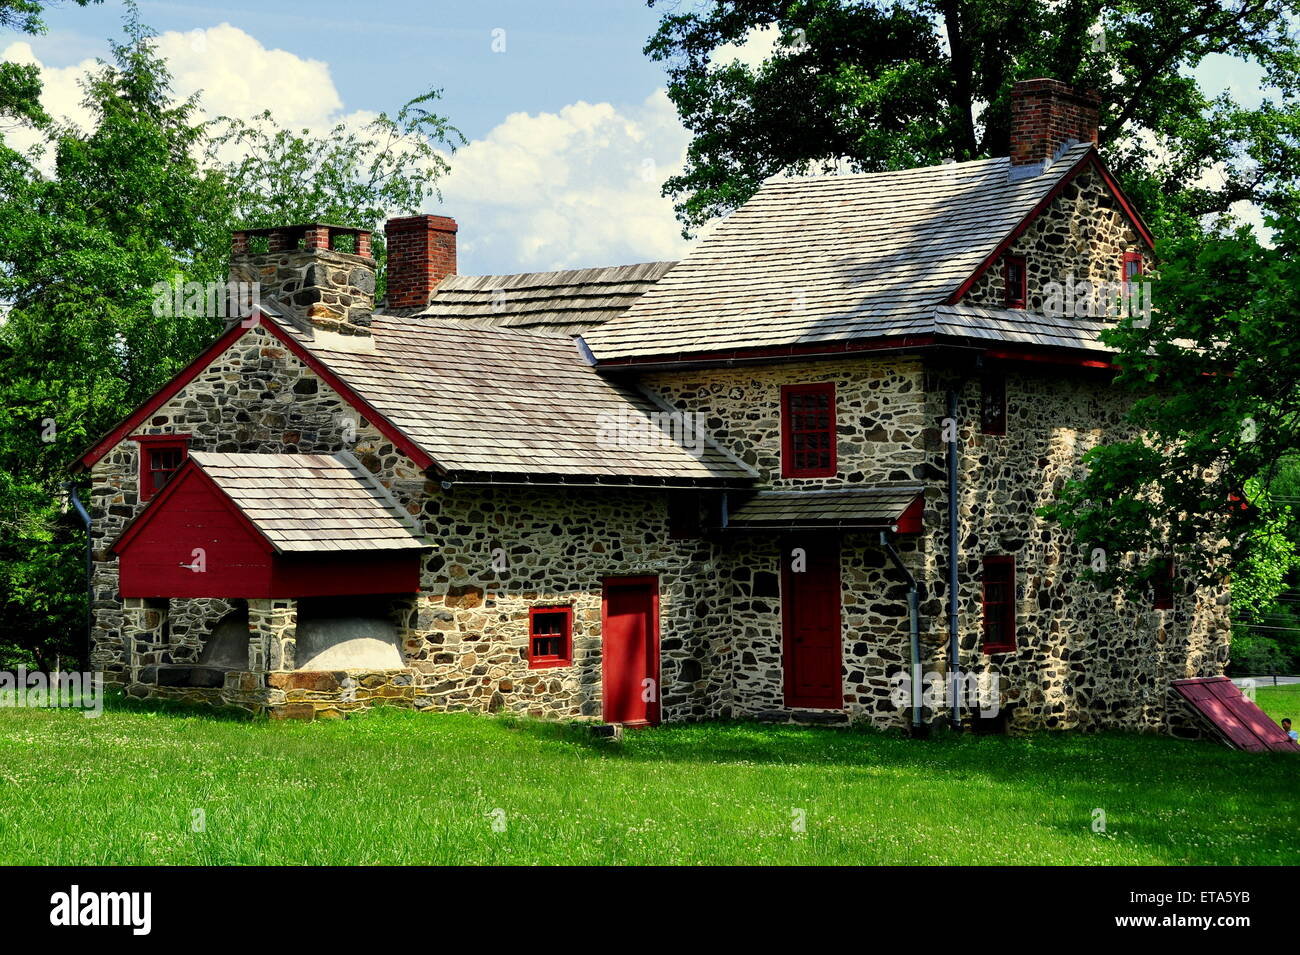 Chadds Ford, Pennsylvania:  The Gideon Gilpin House used as headquarters by the Marquis de Lafayette - Stock Image